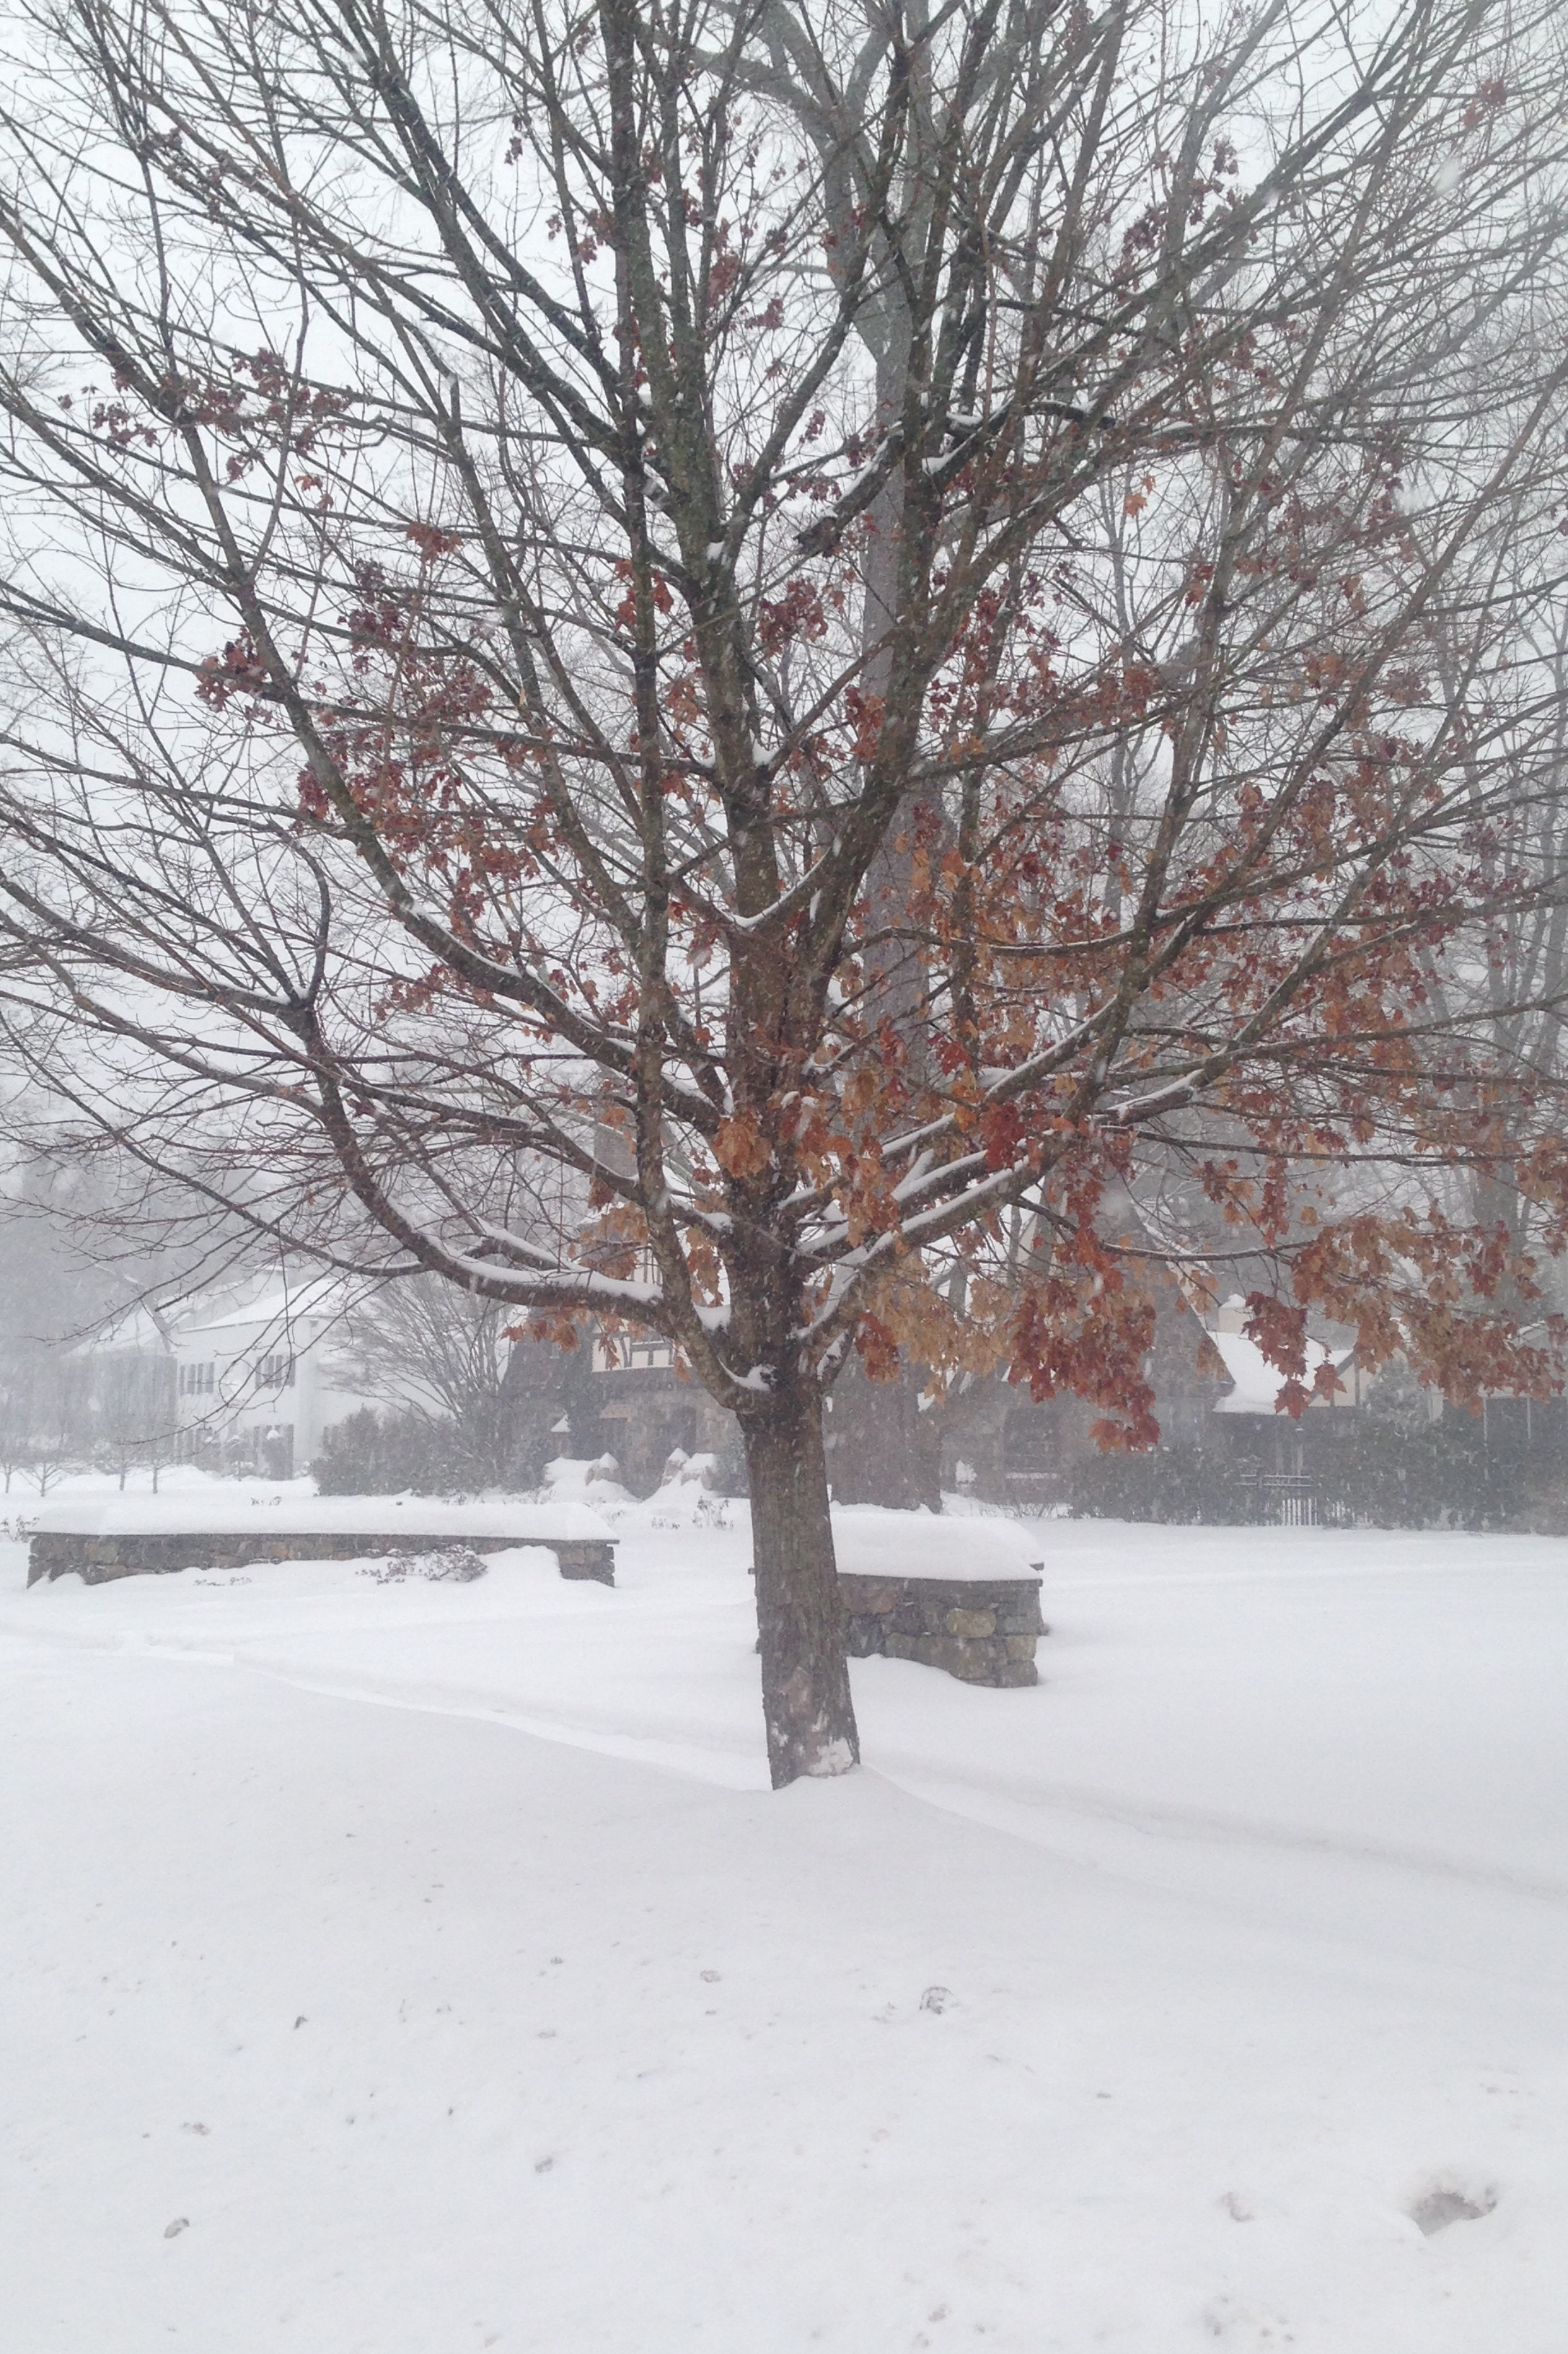 The snow doesn't show signs of stopping in northern Fairfield County.